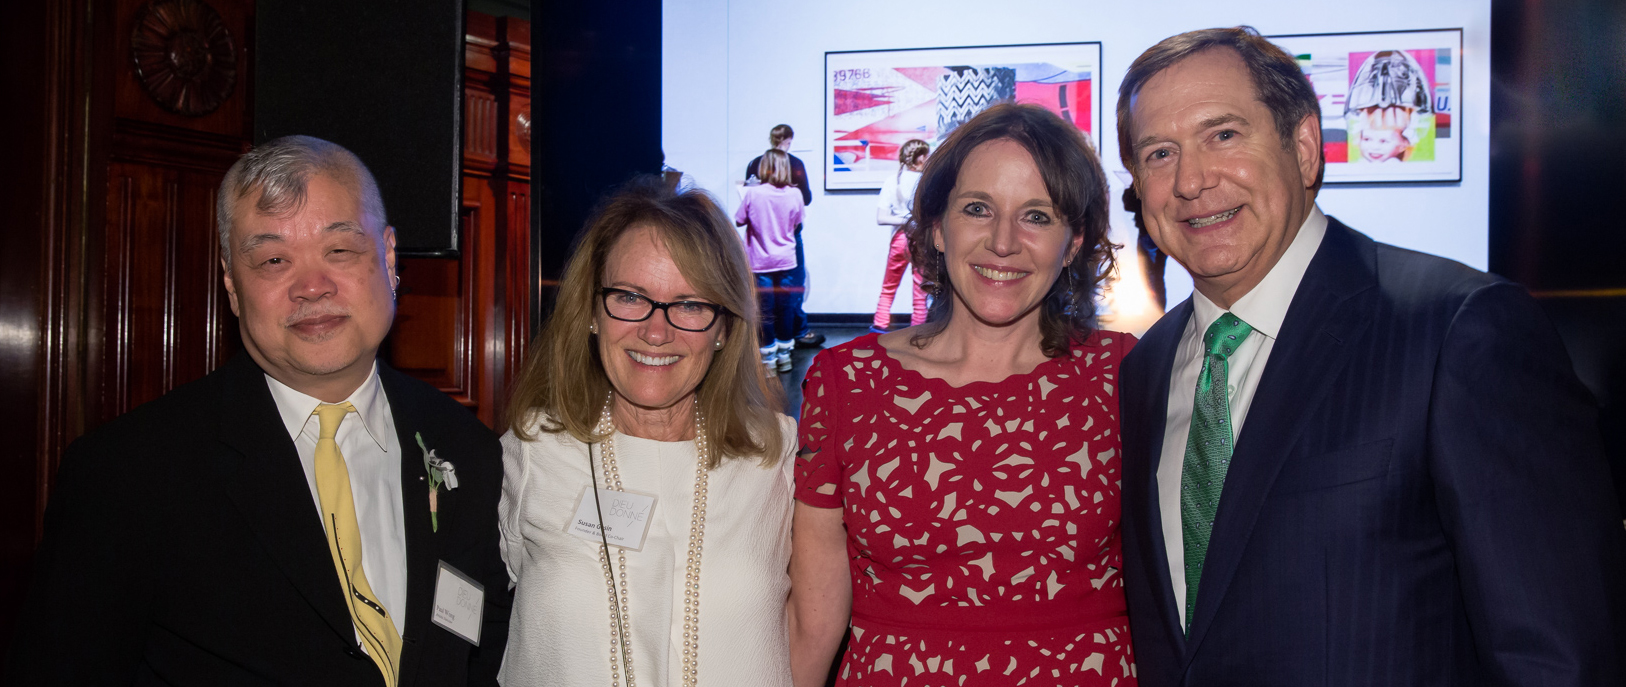 Dieu Donné honoree Paul Wong, Founder & Co-Chair Susan Gosin, Executive Director Kathleen Flynn, and honoree Jordan D. Schnitzer at the Annual Benefit and Auction, 2016. Photo credit: Etienne Frossard